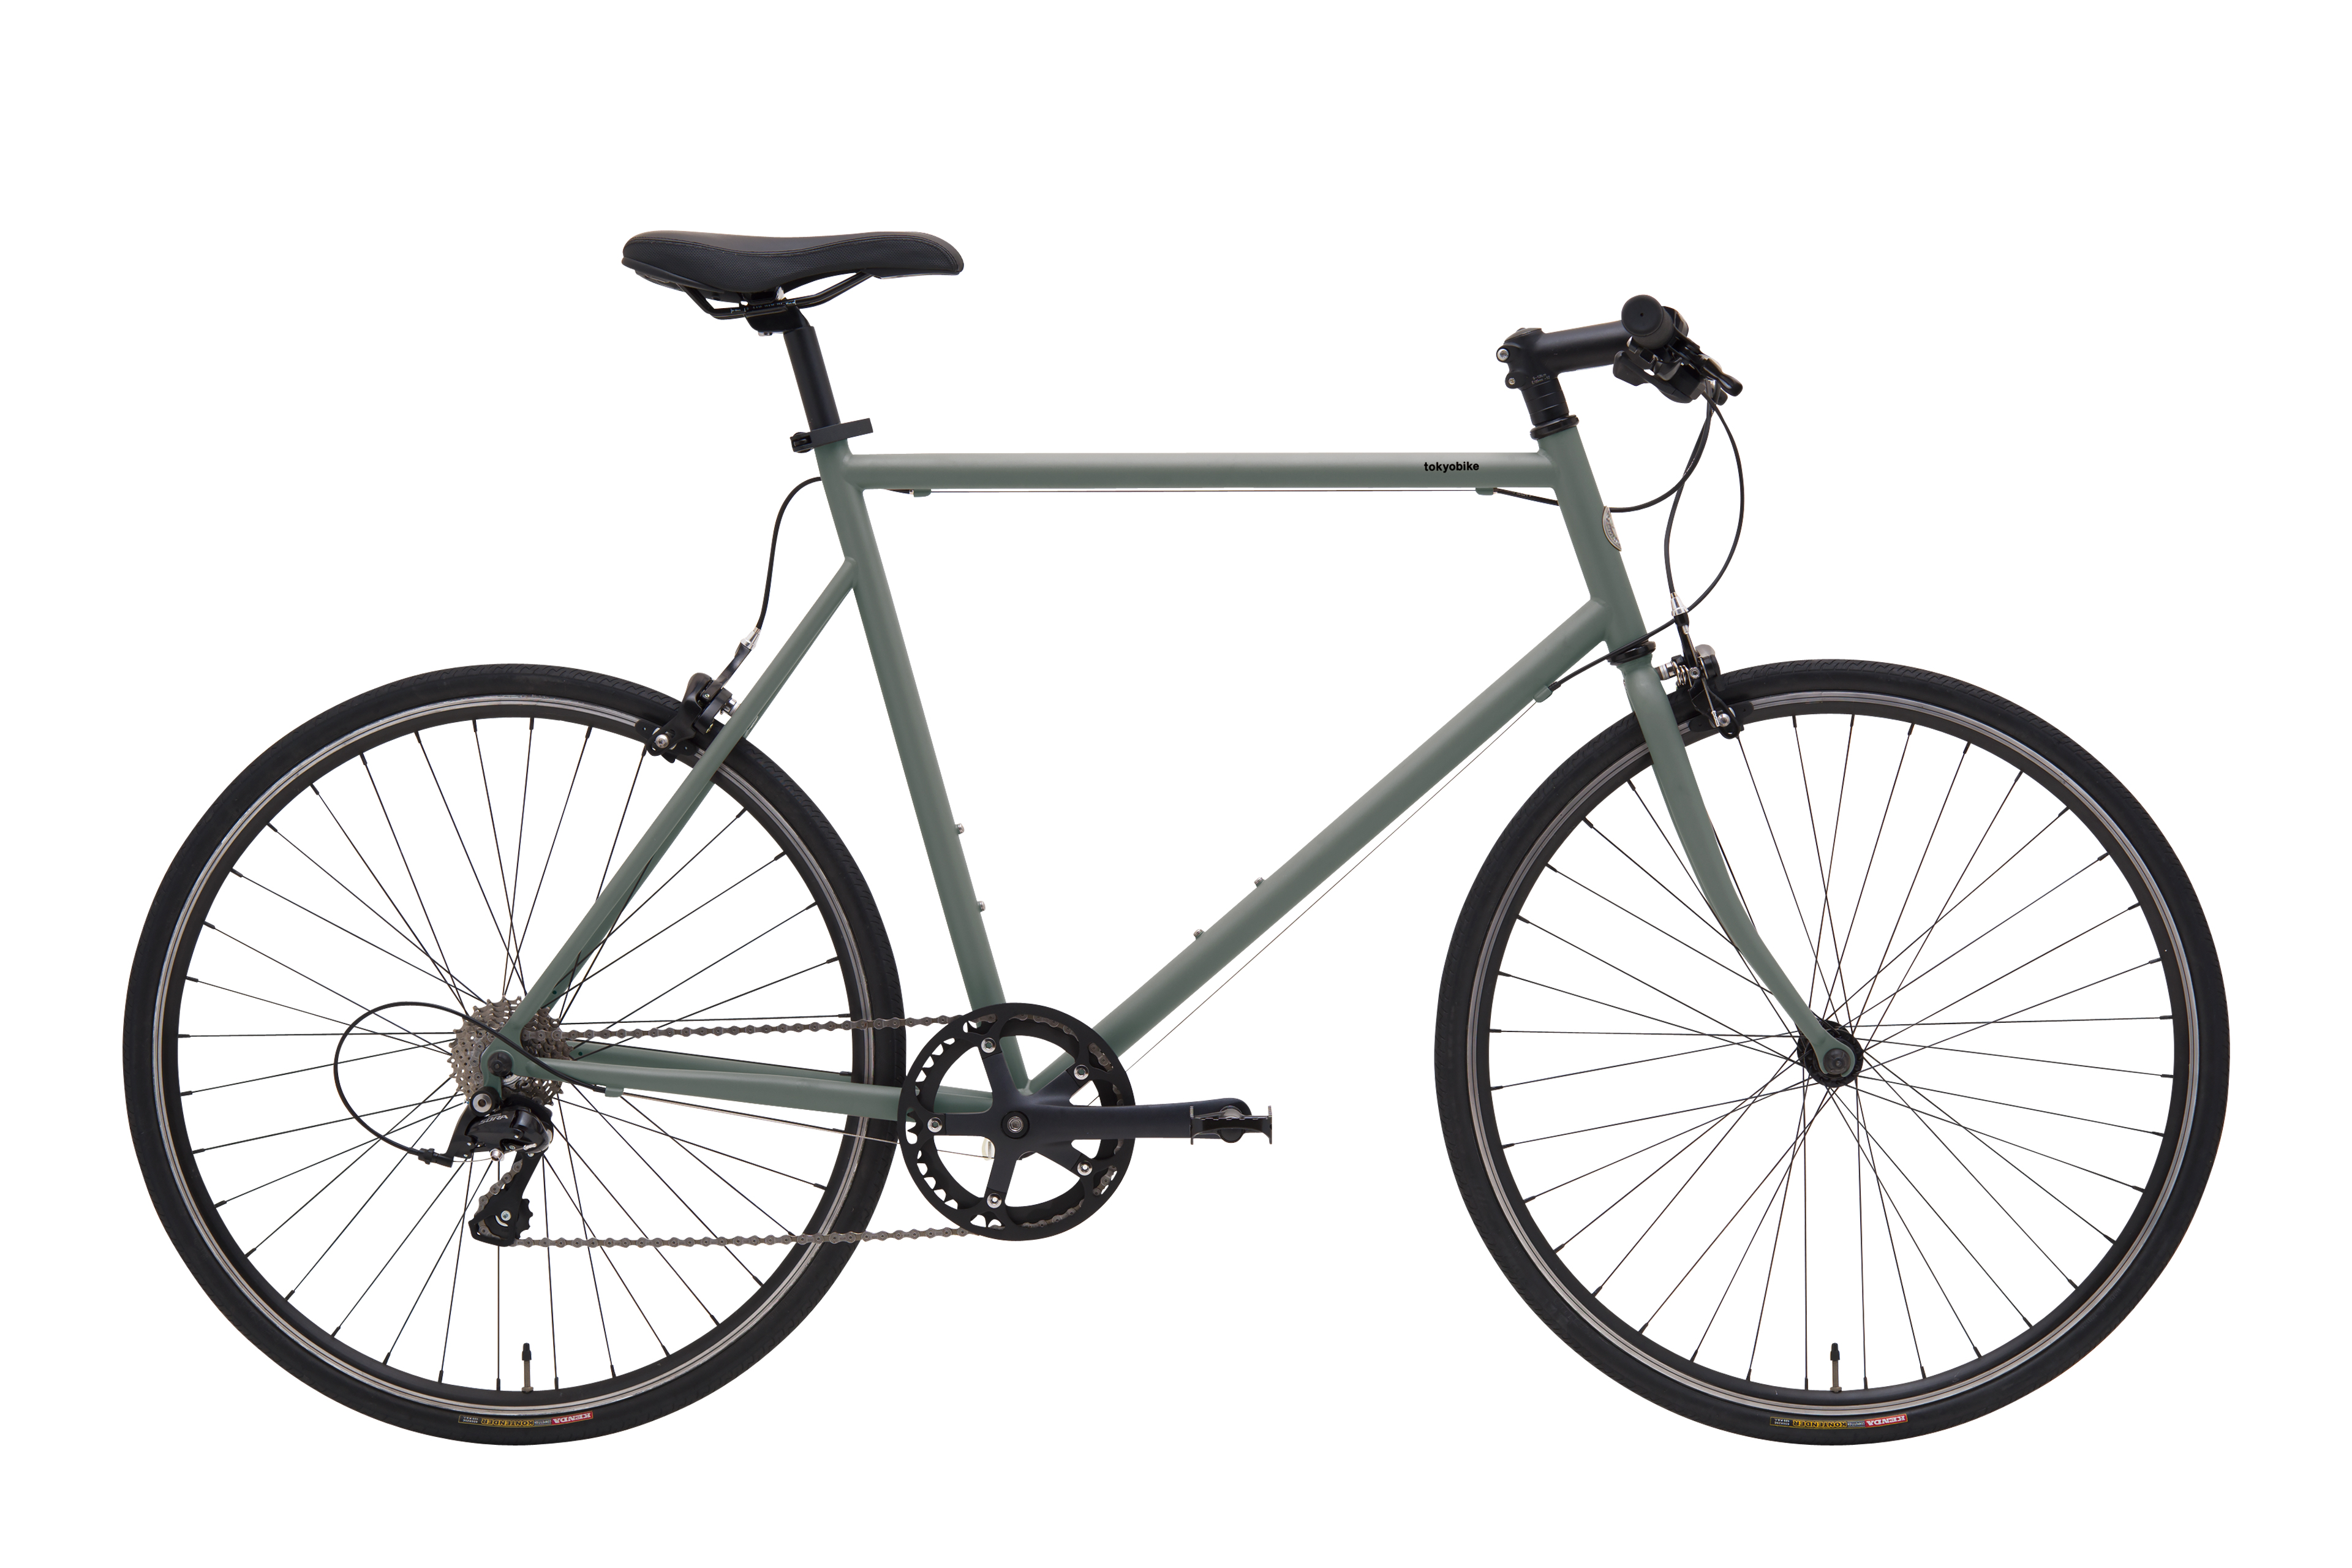 TOKYOBIKE SPORT9s 2021年新色 CACTUS GREEN カクタスグリーン